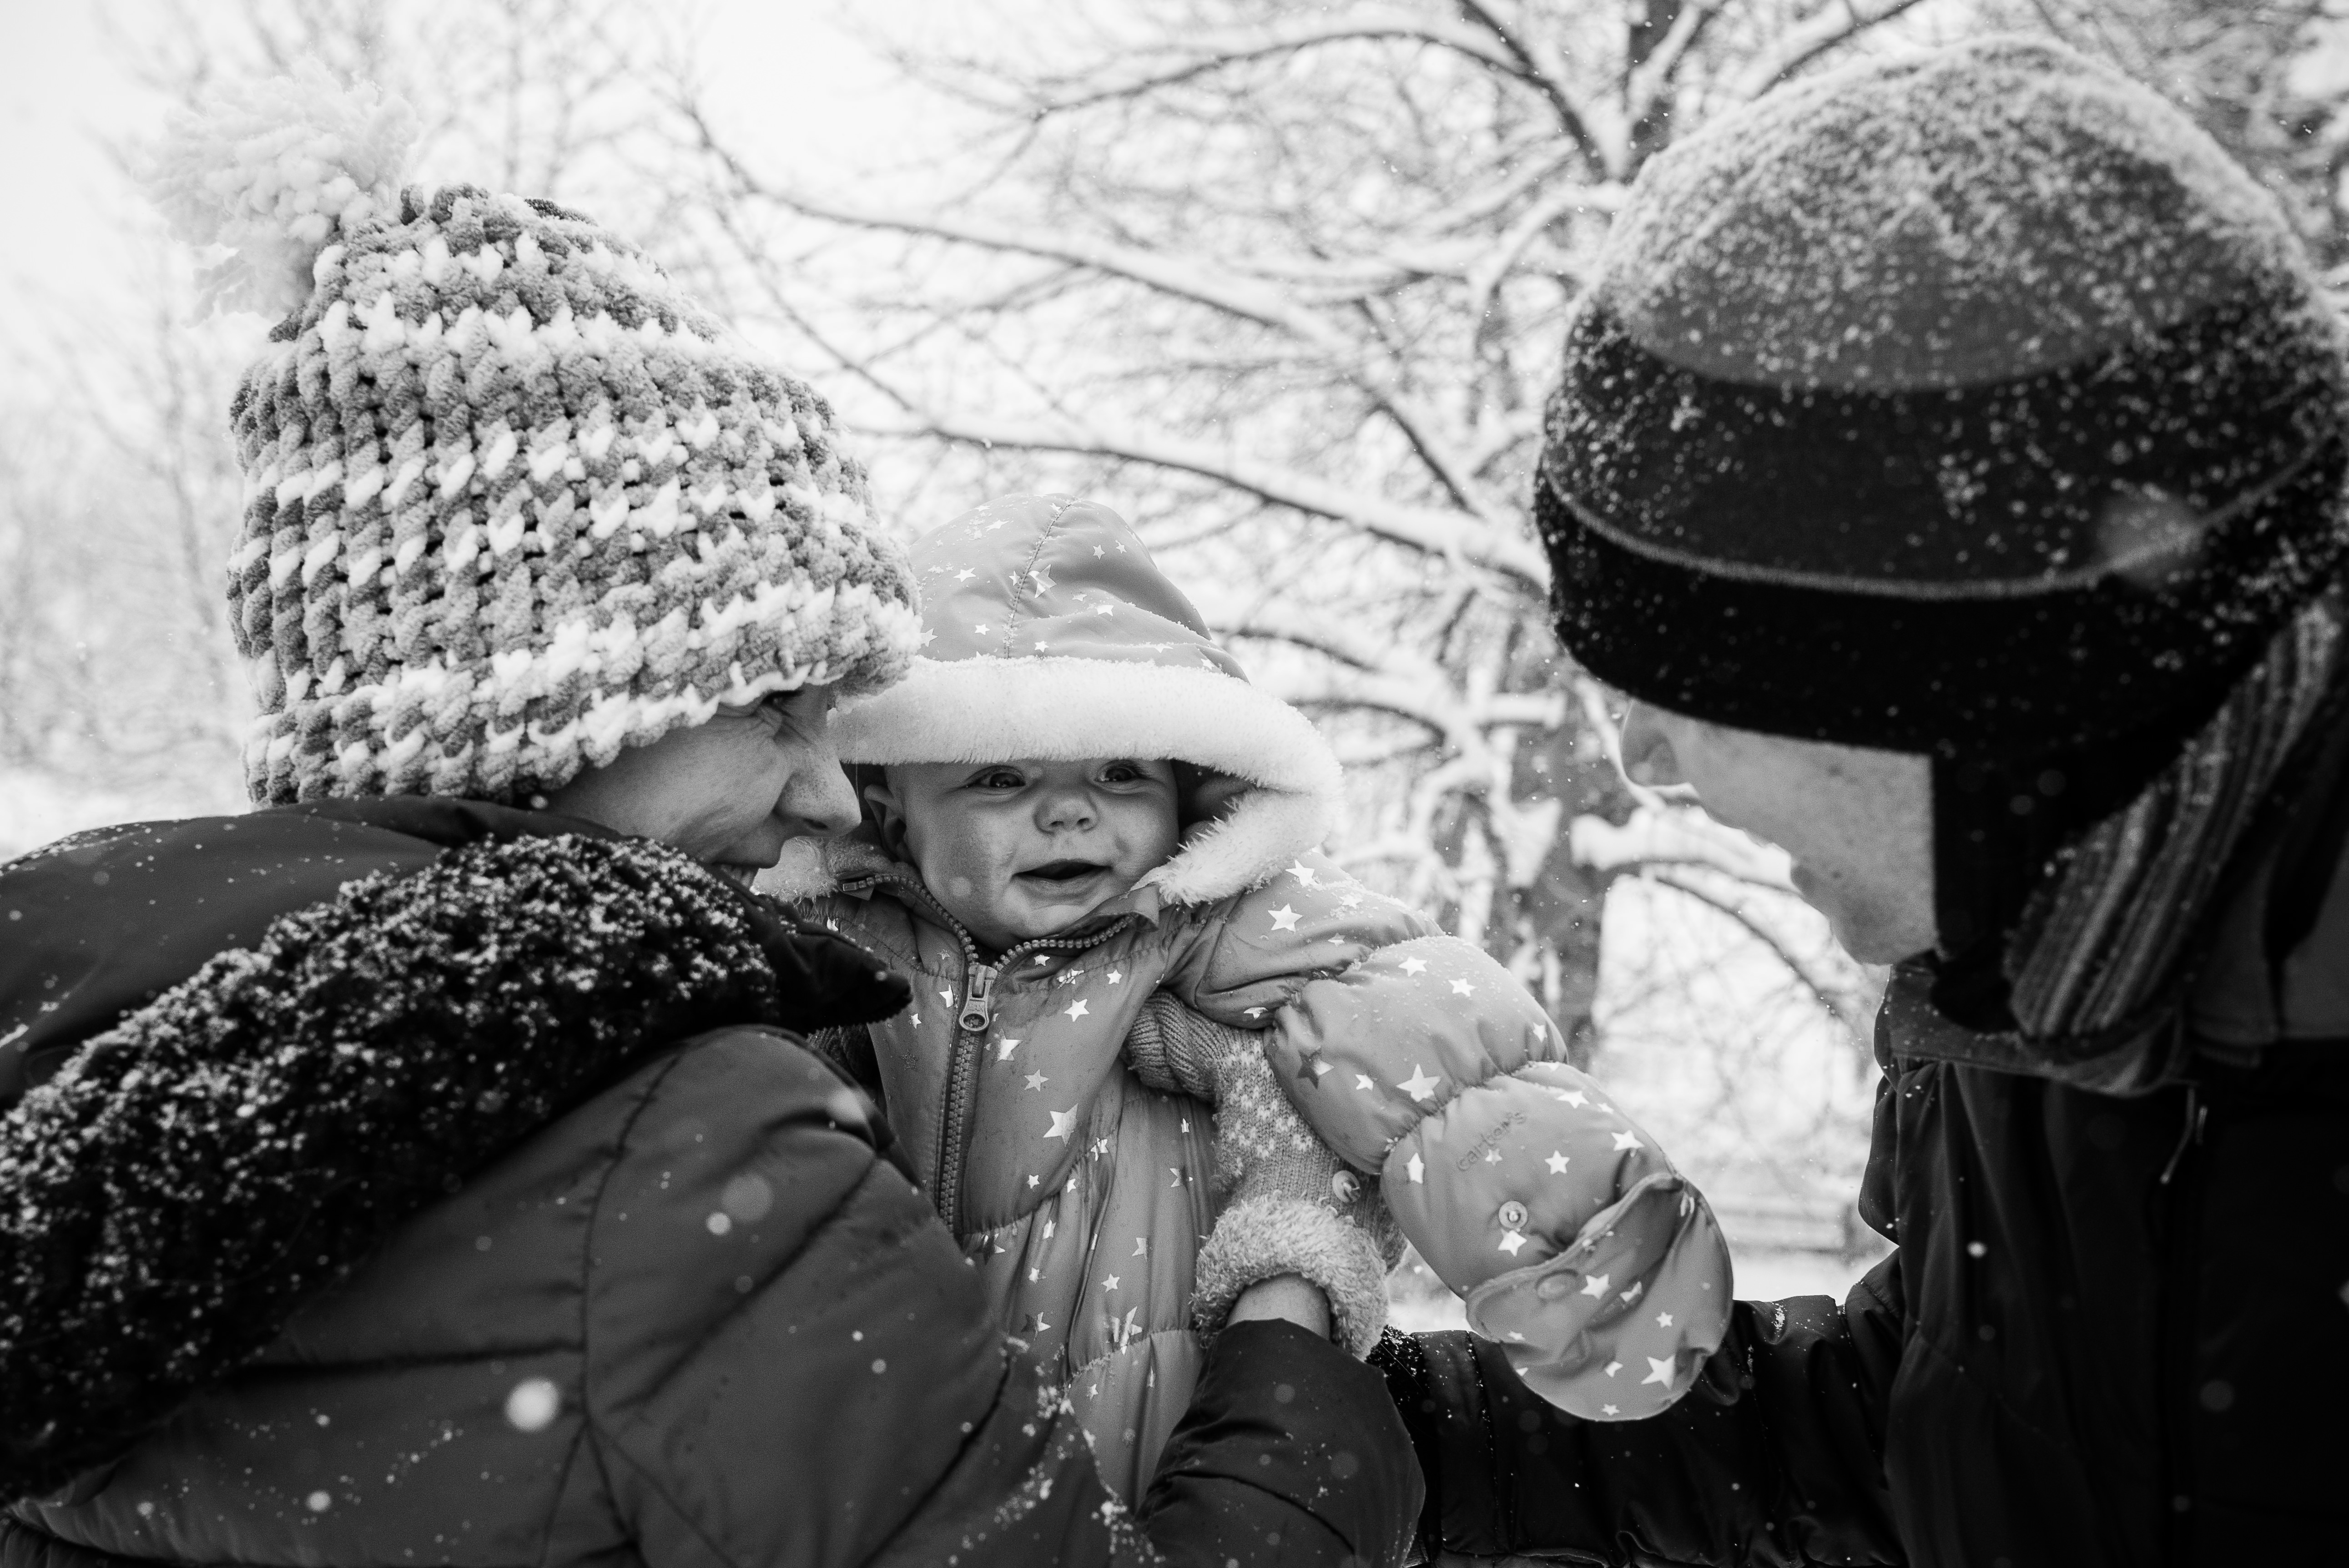 Mom, dad, and baby in snow